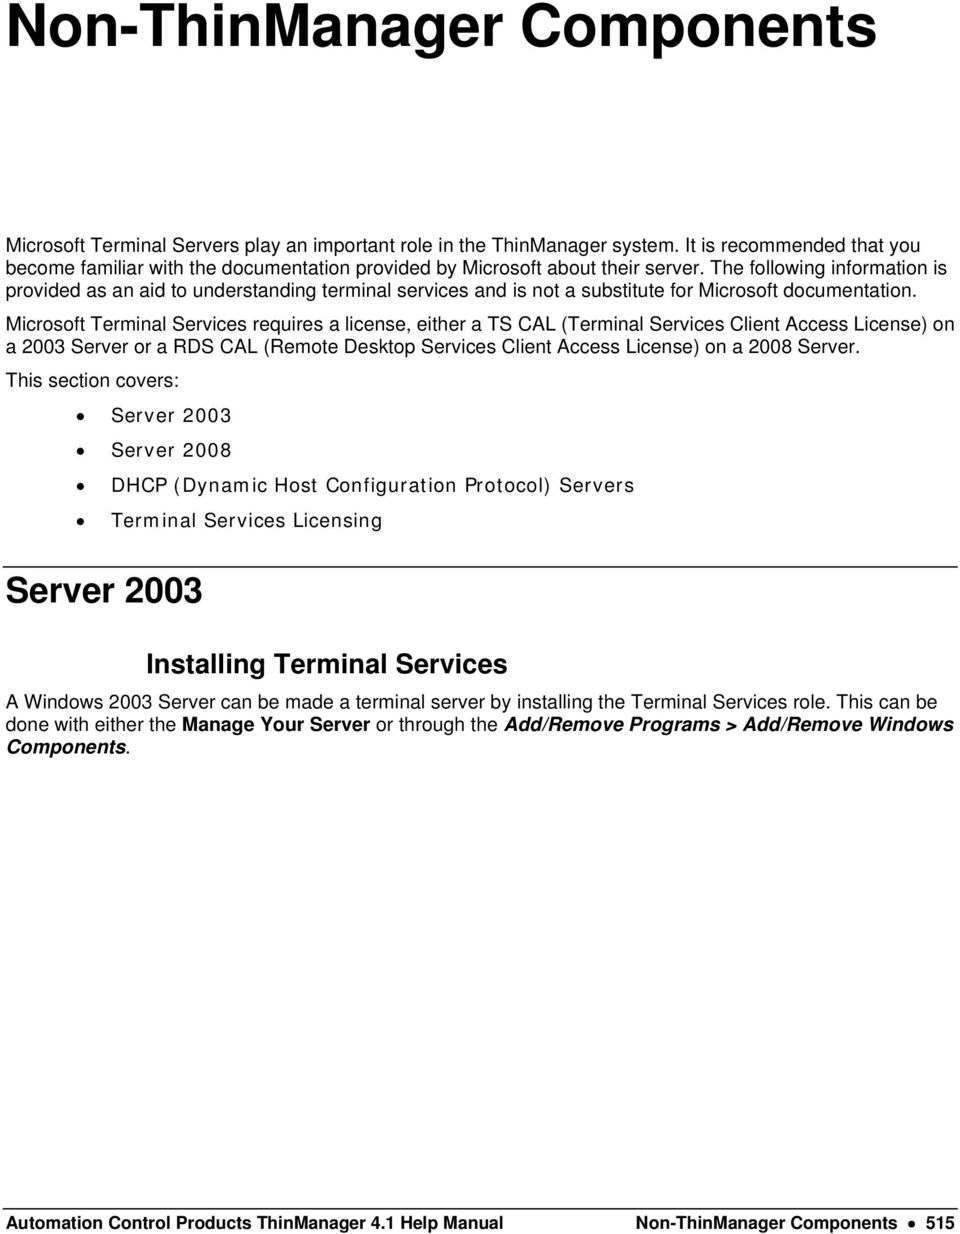 The following information is provided as an aid to understanding terminal services and is not a substitute for Microsoft documentation.